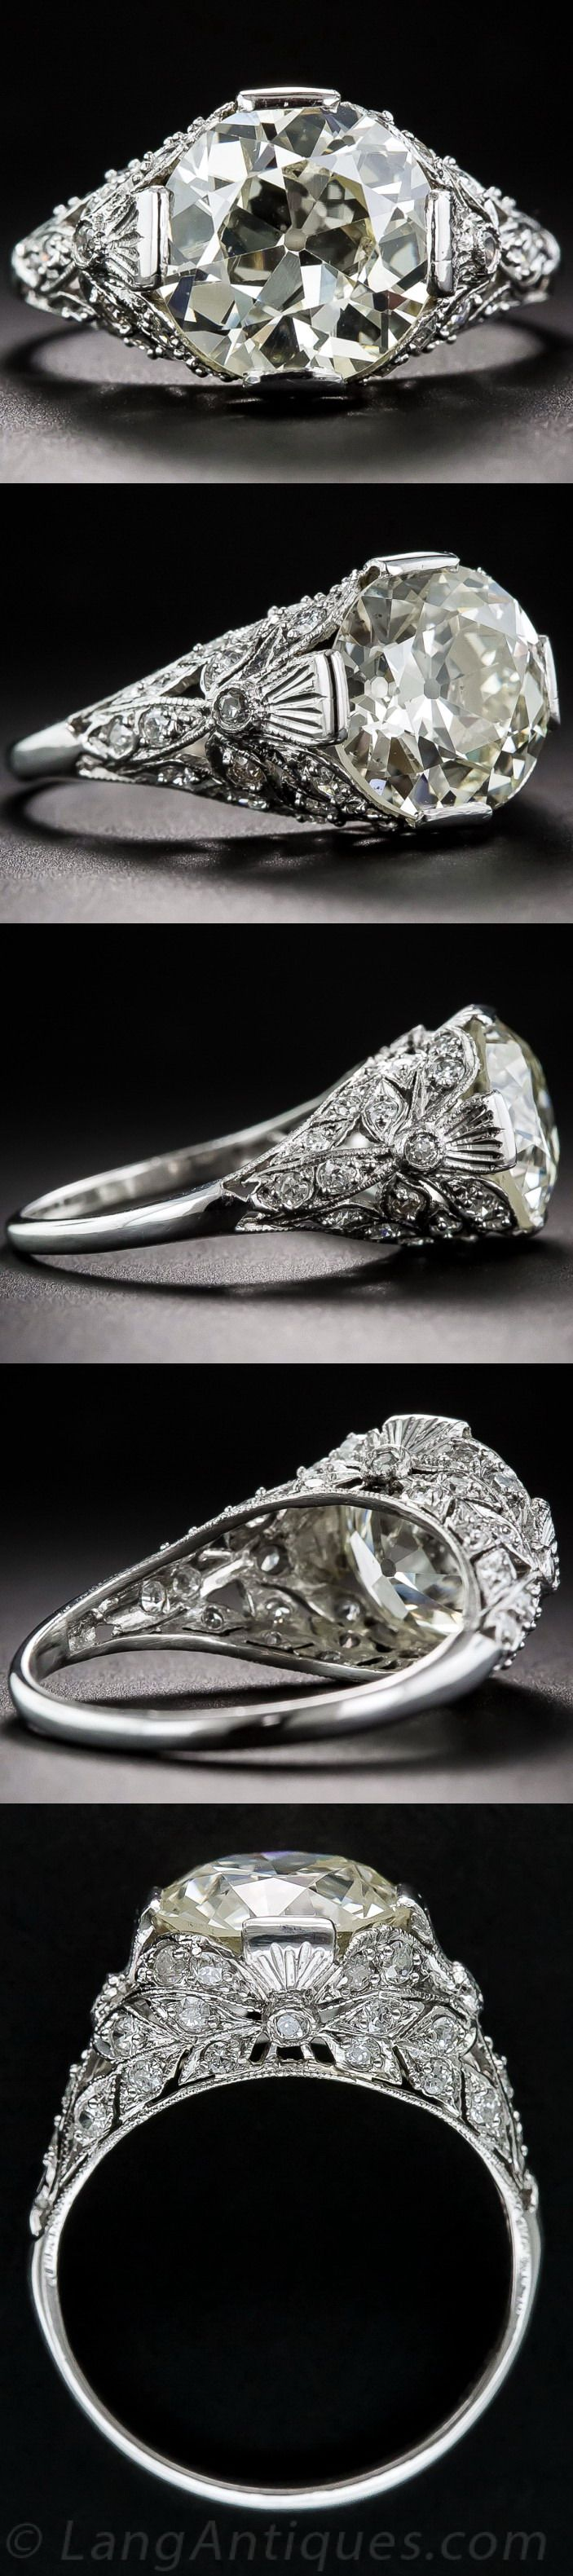 3.90 Carat European-Cut Diamond Platinum Art Deco Engagement Ring. The very impressive and flashy stone radiates from atop its original 1920-30s-era platinum and diamond mounting thoroughly adorned all around with small glittering diamonds set into stylized foliate inspired settings. Delicate hand engraved milgraining adds the finishing touch to this dynamic Art Deco dazzler in finger size 6 3/4.